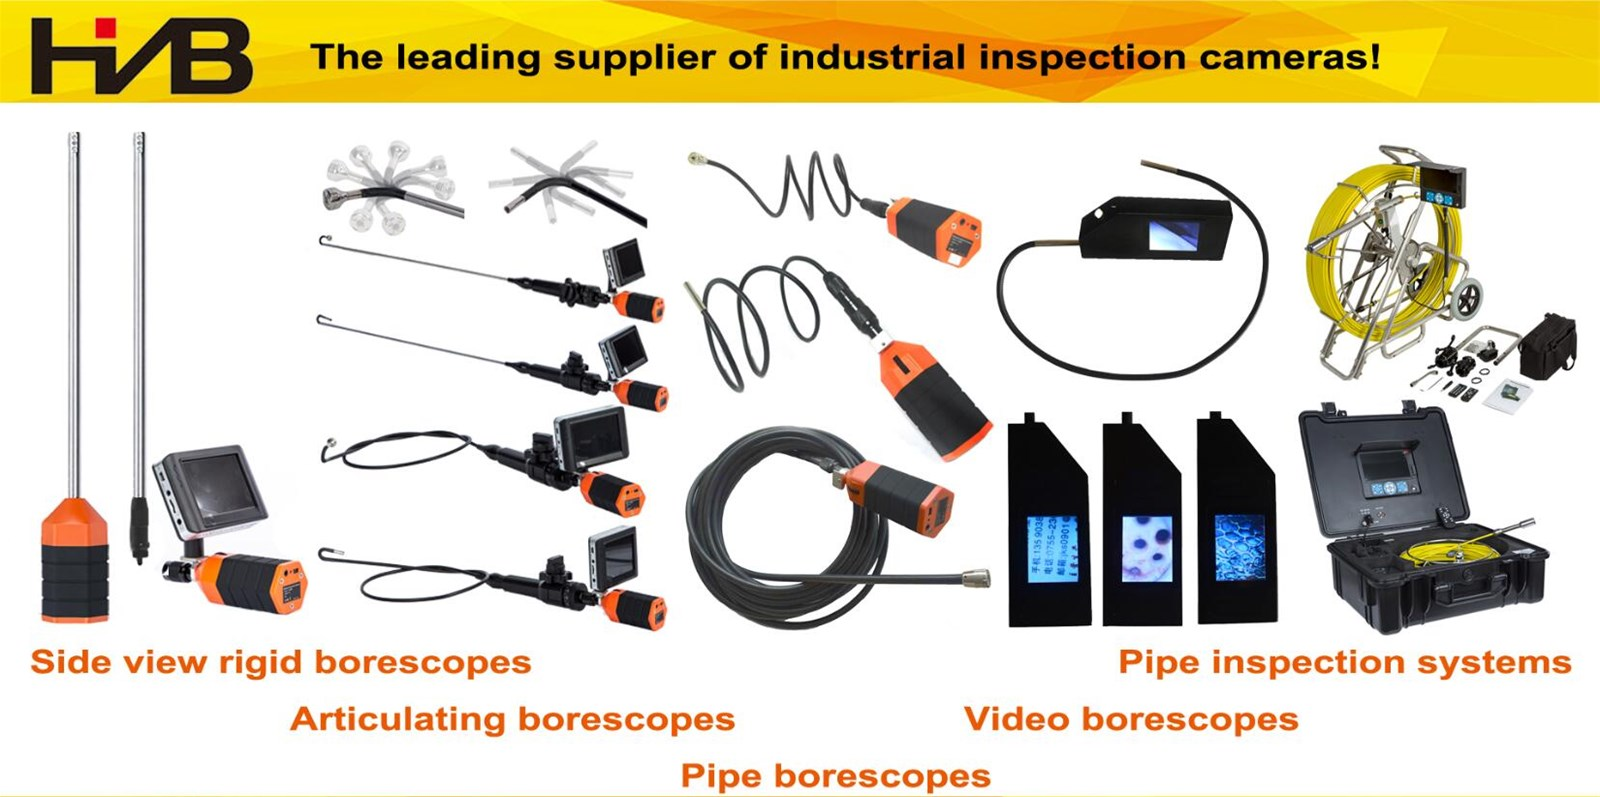 24G or WiFiSide View Rigid Borescope Inspection Camera with Detachable Camera Probe